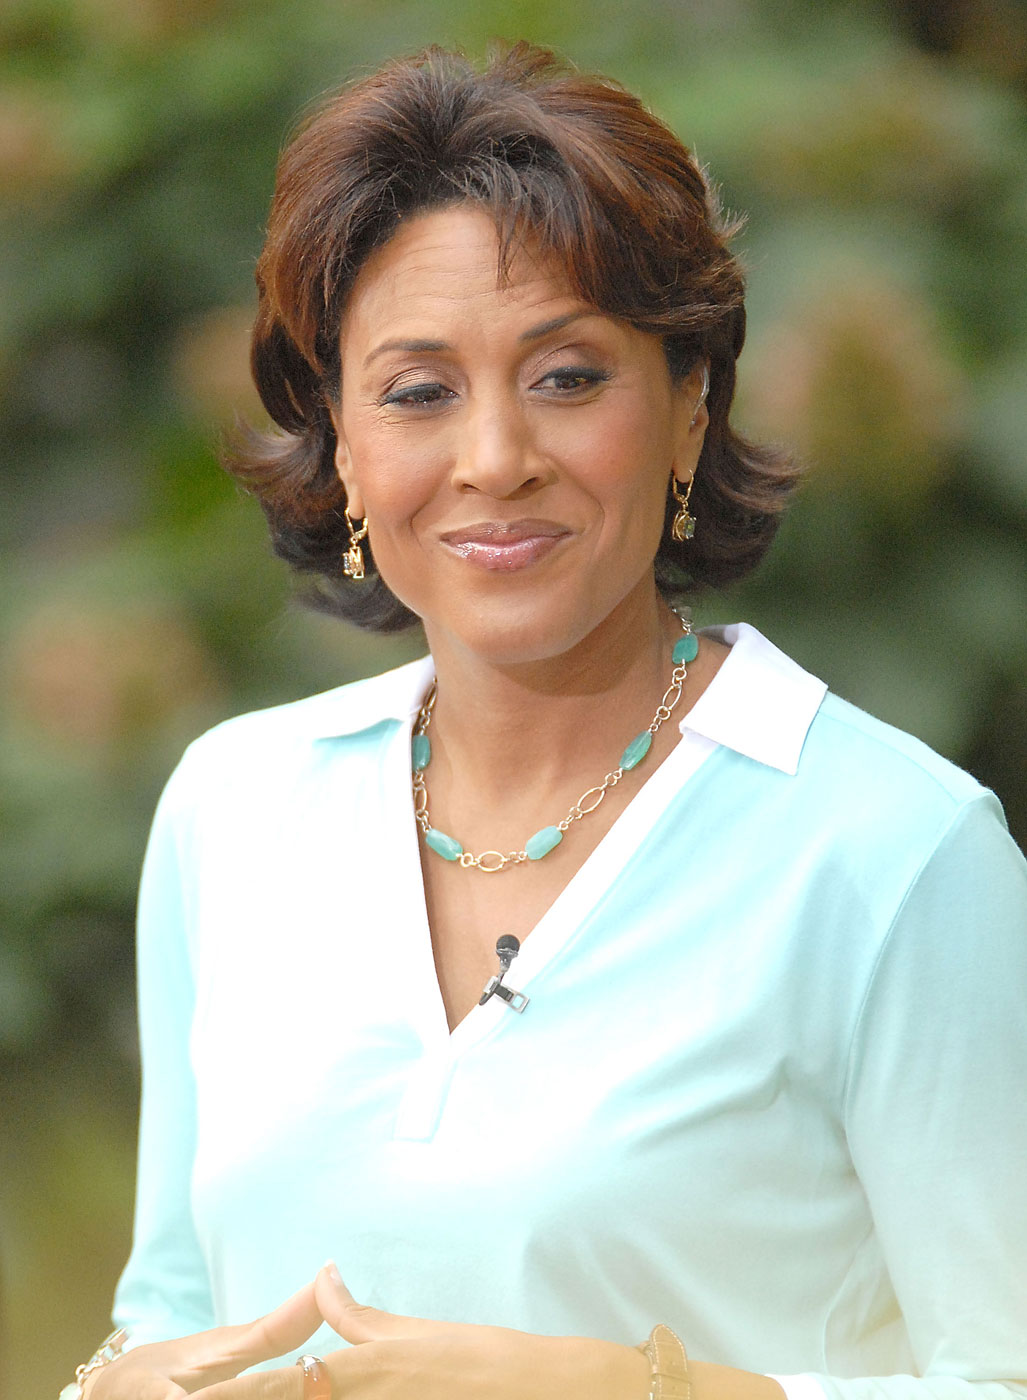 Robin Roberts                               News personality and author                               Diagnosed with breast cancer in 2007 and with treatment-related myeldysplastic syndrome in 2011